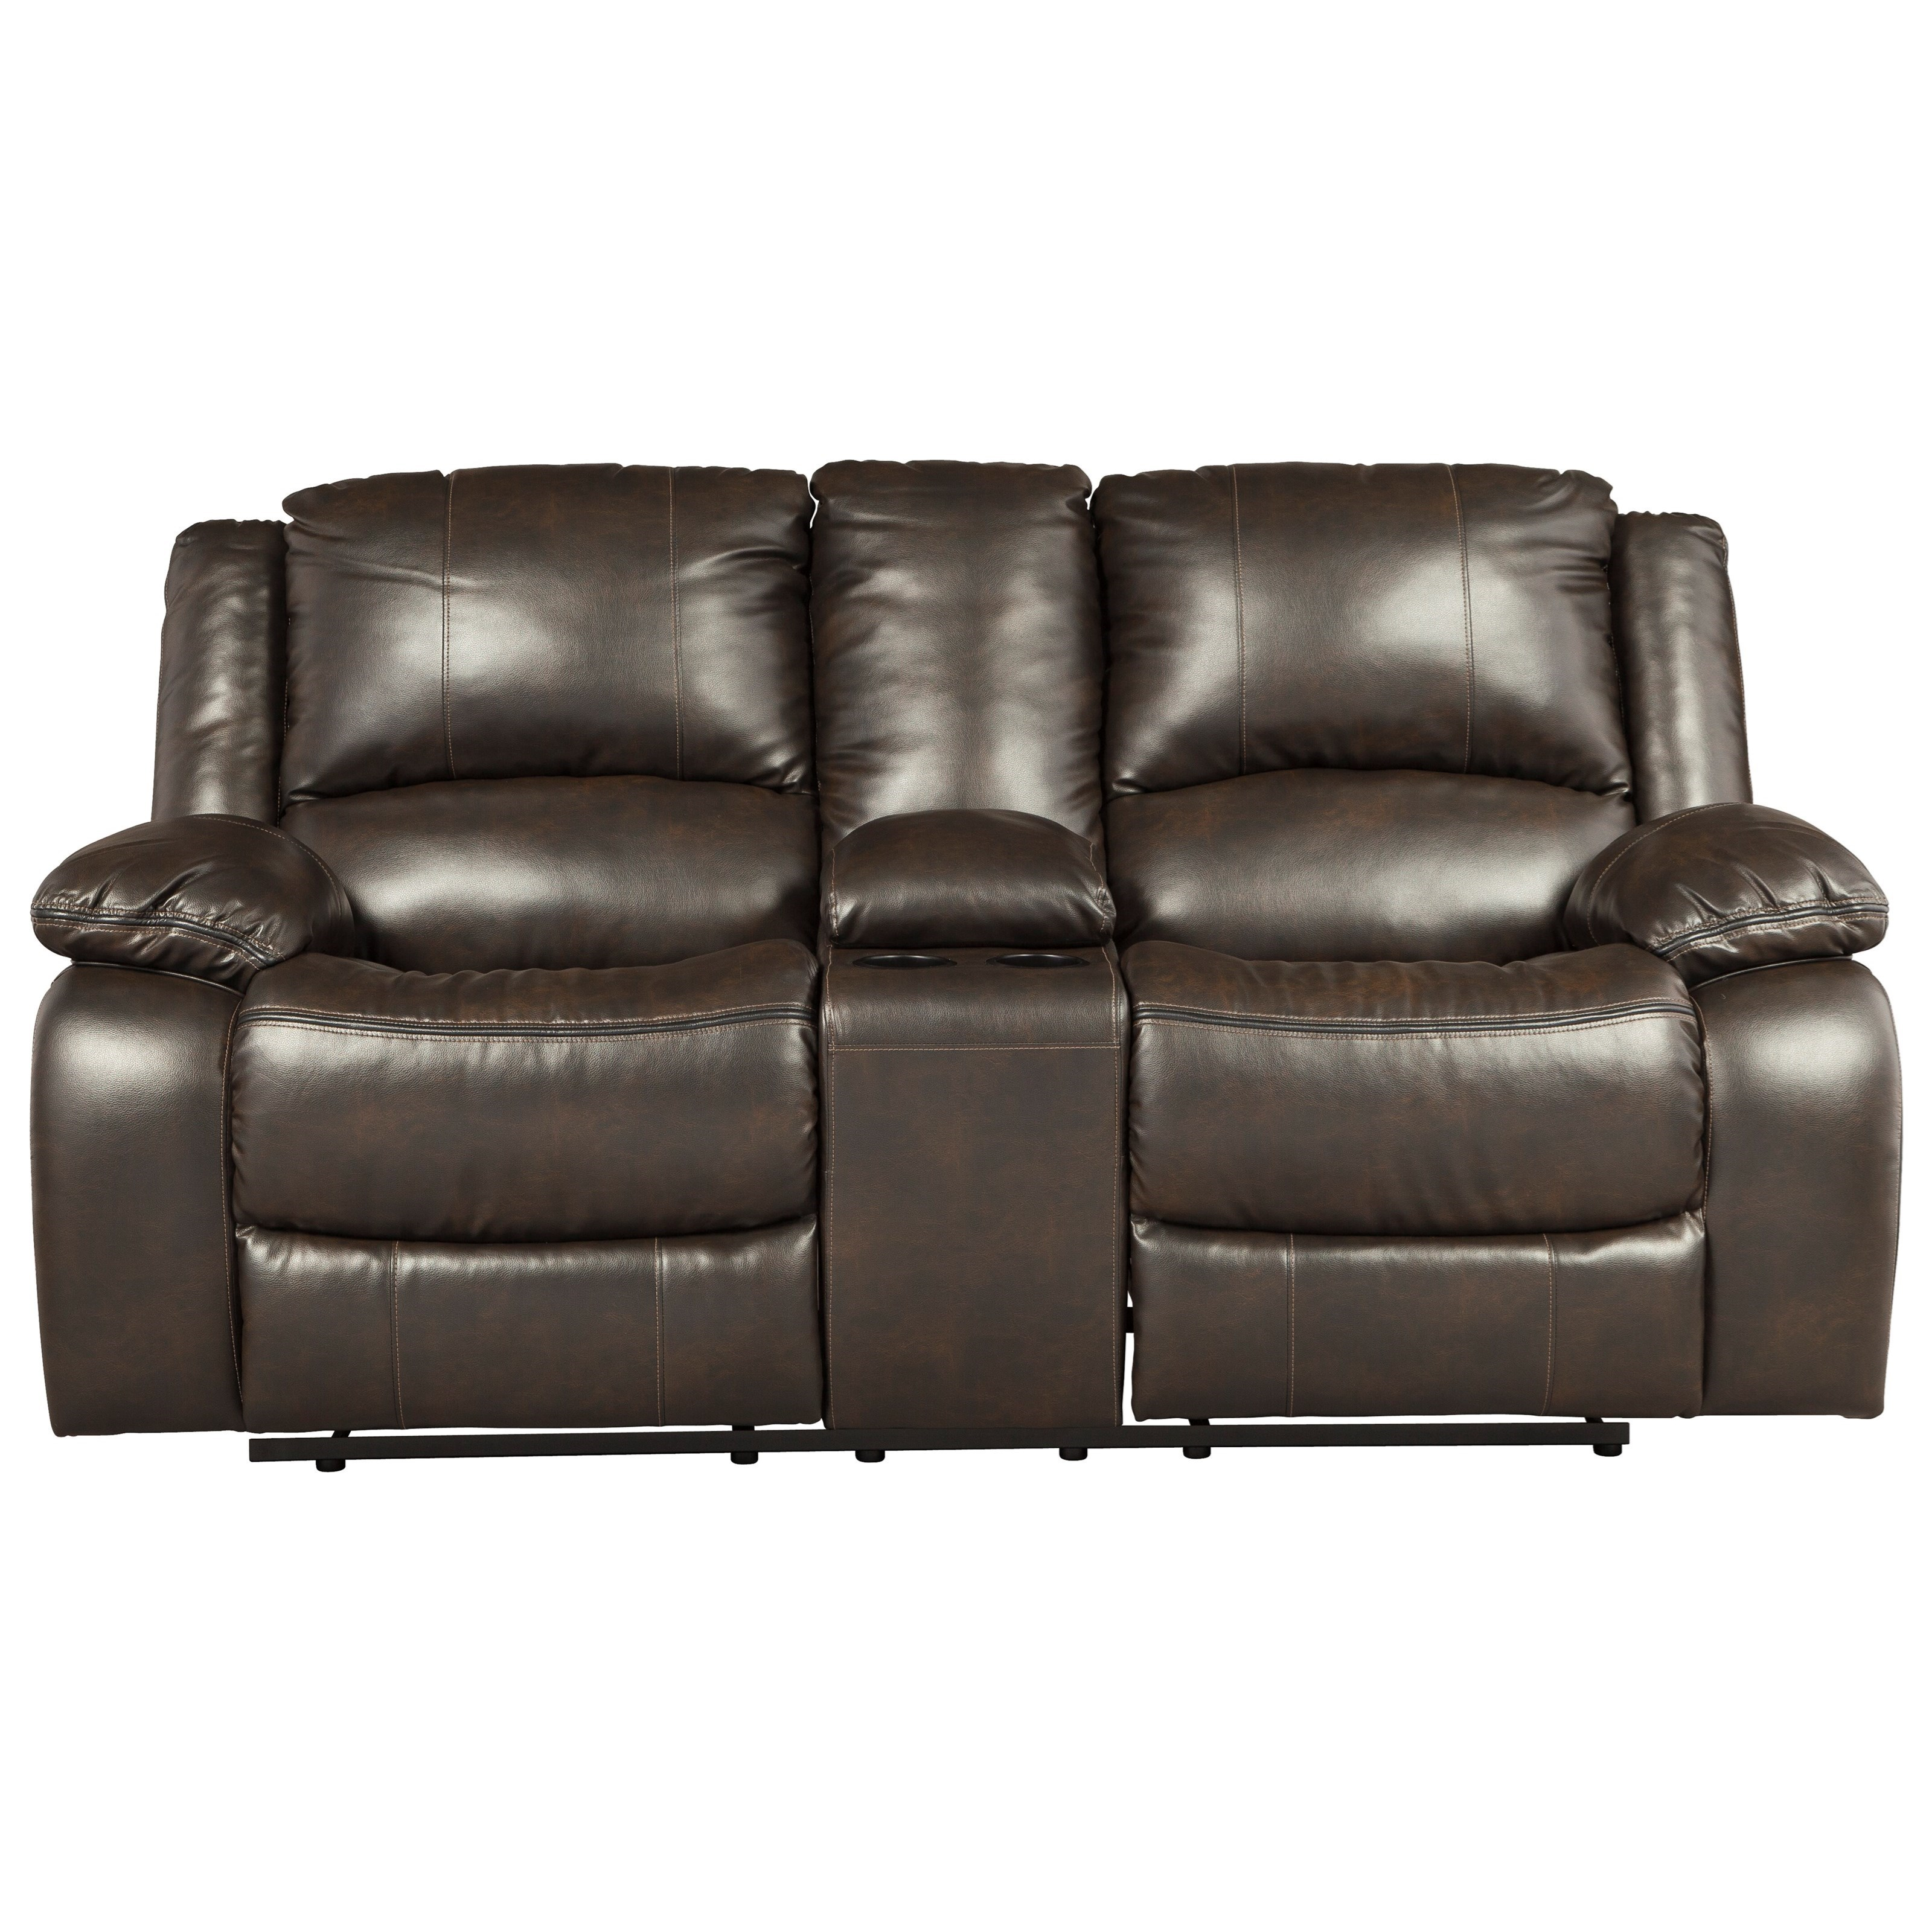 middle z motion maverick wmiddle product la w full way boy reclining console loveseat reclina